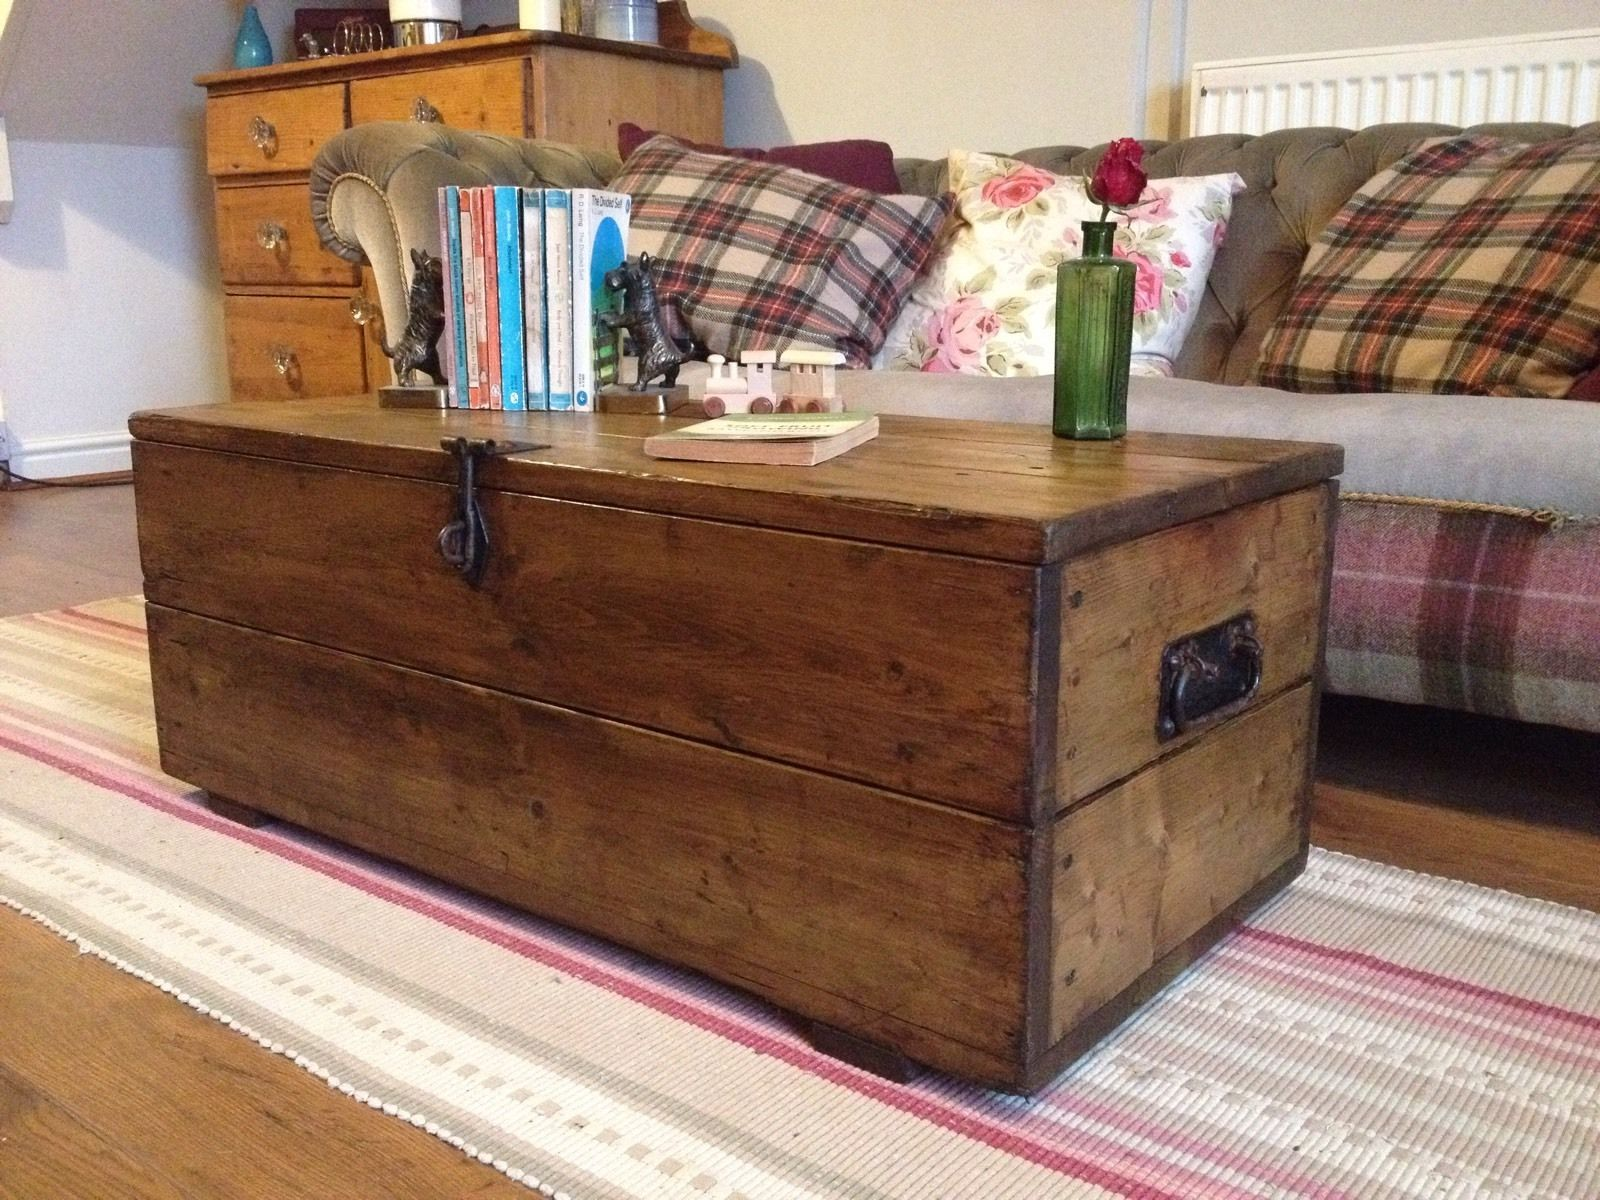 Old Rustic Pine Box Vintage Wooden Chest Coffee Table Toy Or Storage Trunk Wooden Trunk Coffee Table Chest Coffee Table Wooden Chest